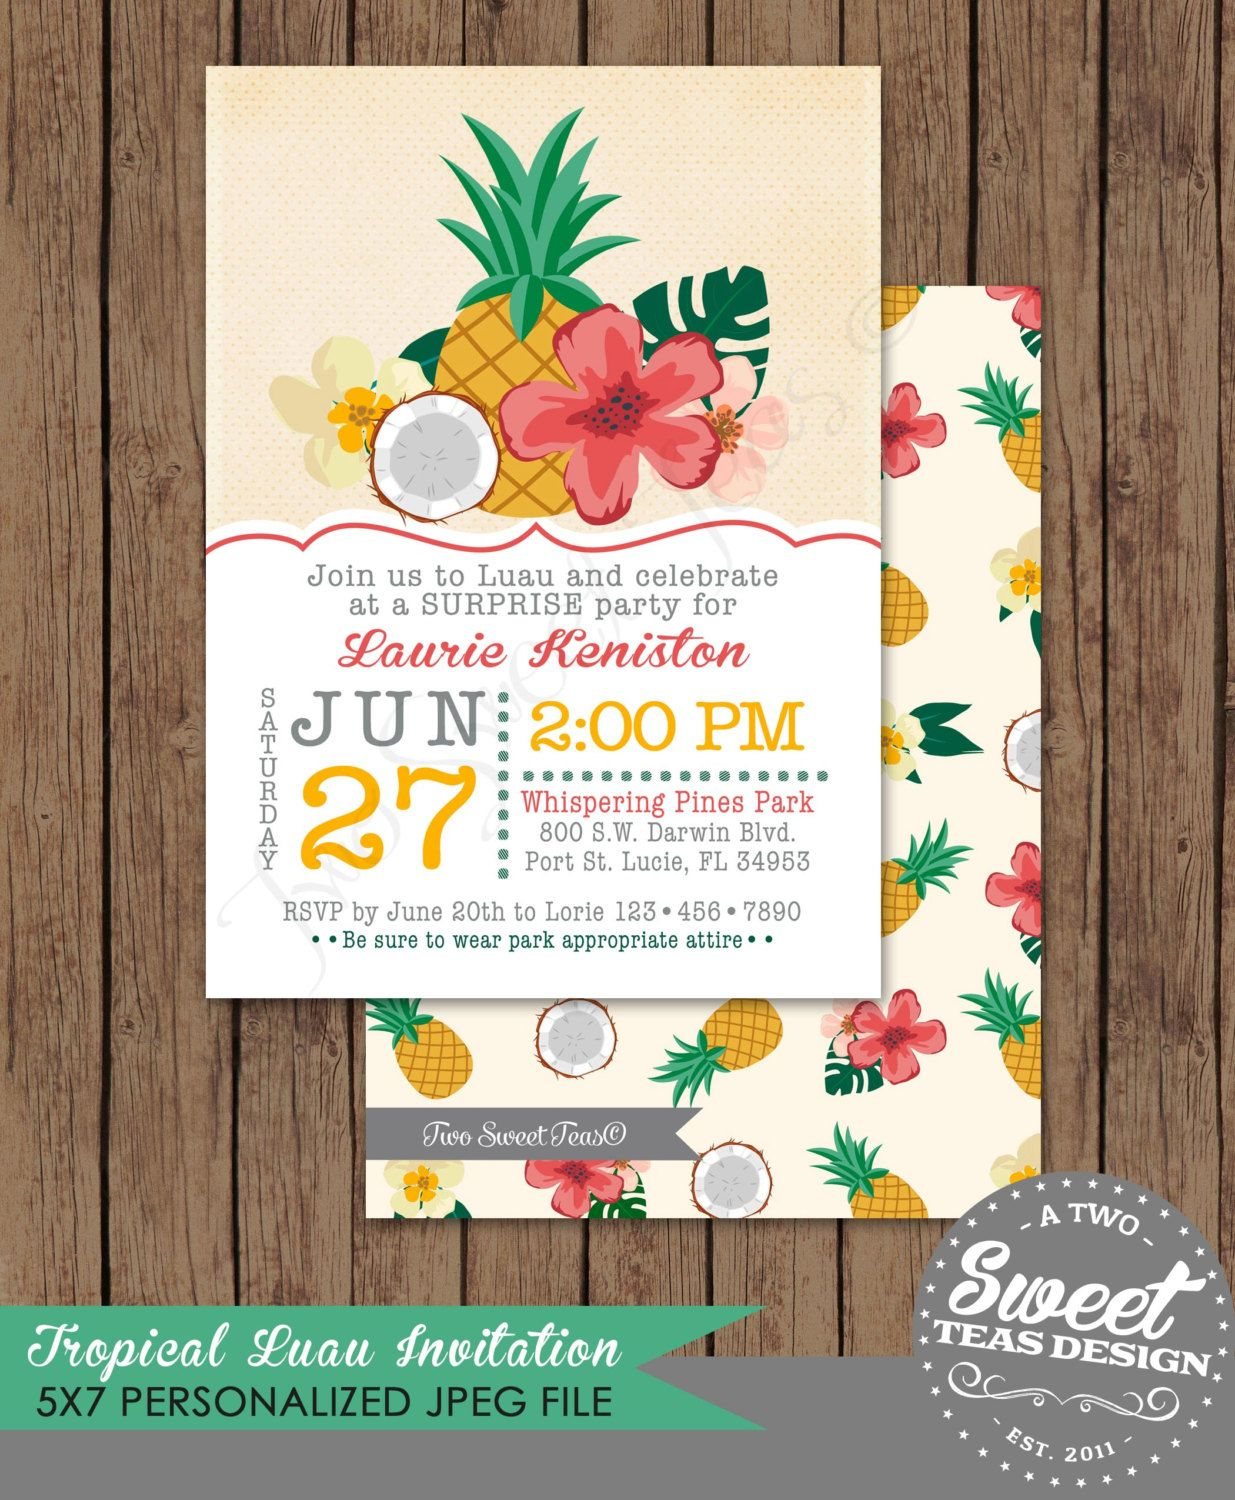 Luau Invitation Birthday Party Card Tropical By 2SweetTeas On Etsy